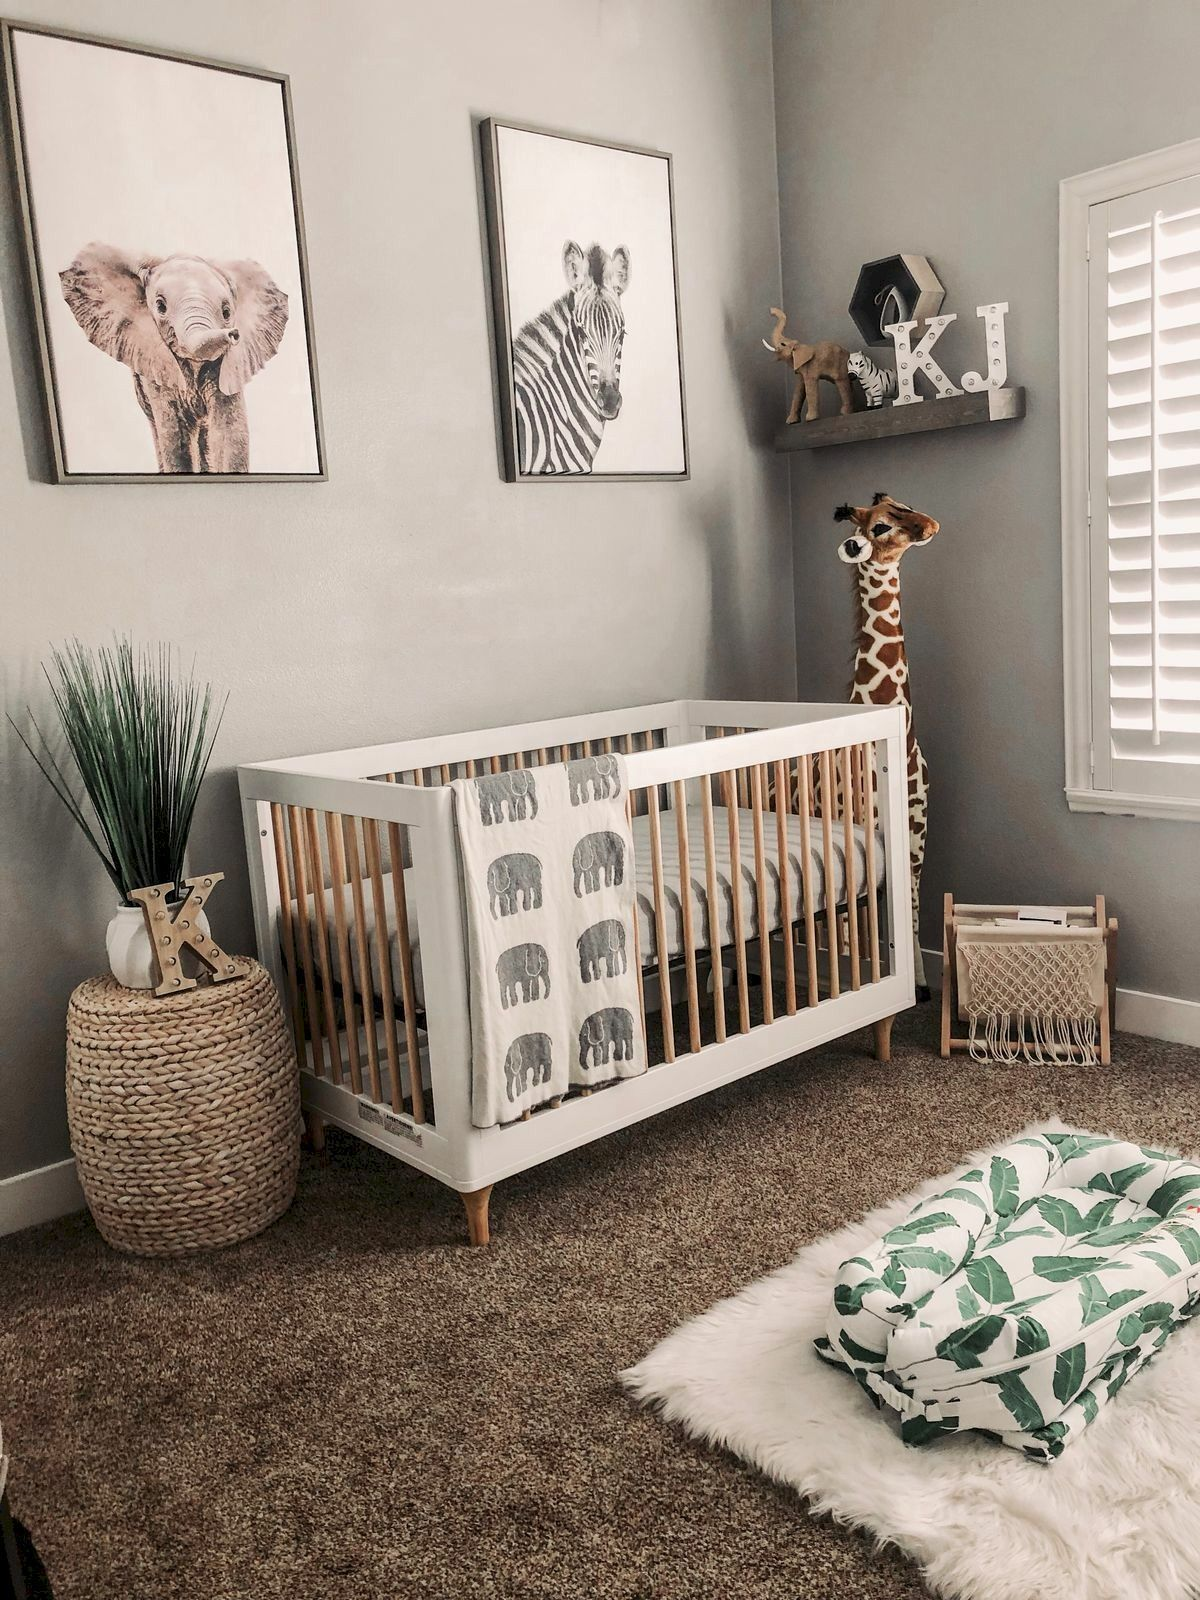 50 Cute Nursery Ideas For Baby Boy Babyboyblankets Your Baby Boy Deserves To Be Spoiled With A Magi Baby Boy Room Decor Baby Boy Room Nursery Nursery Room Boy